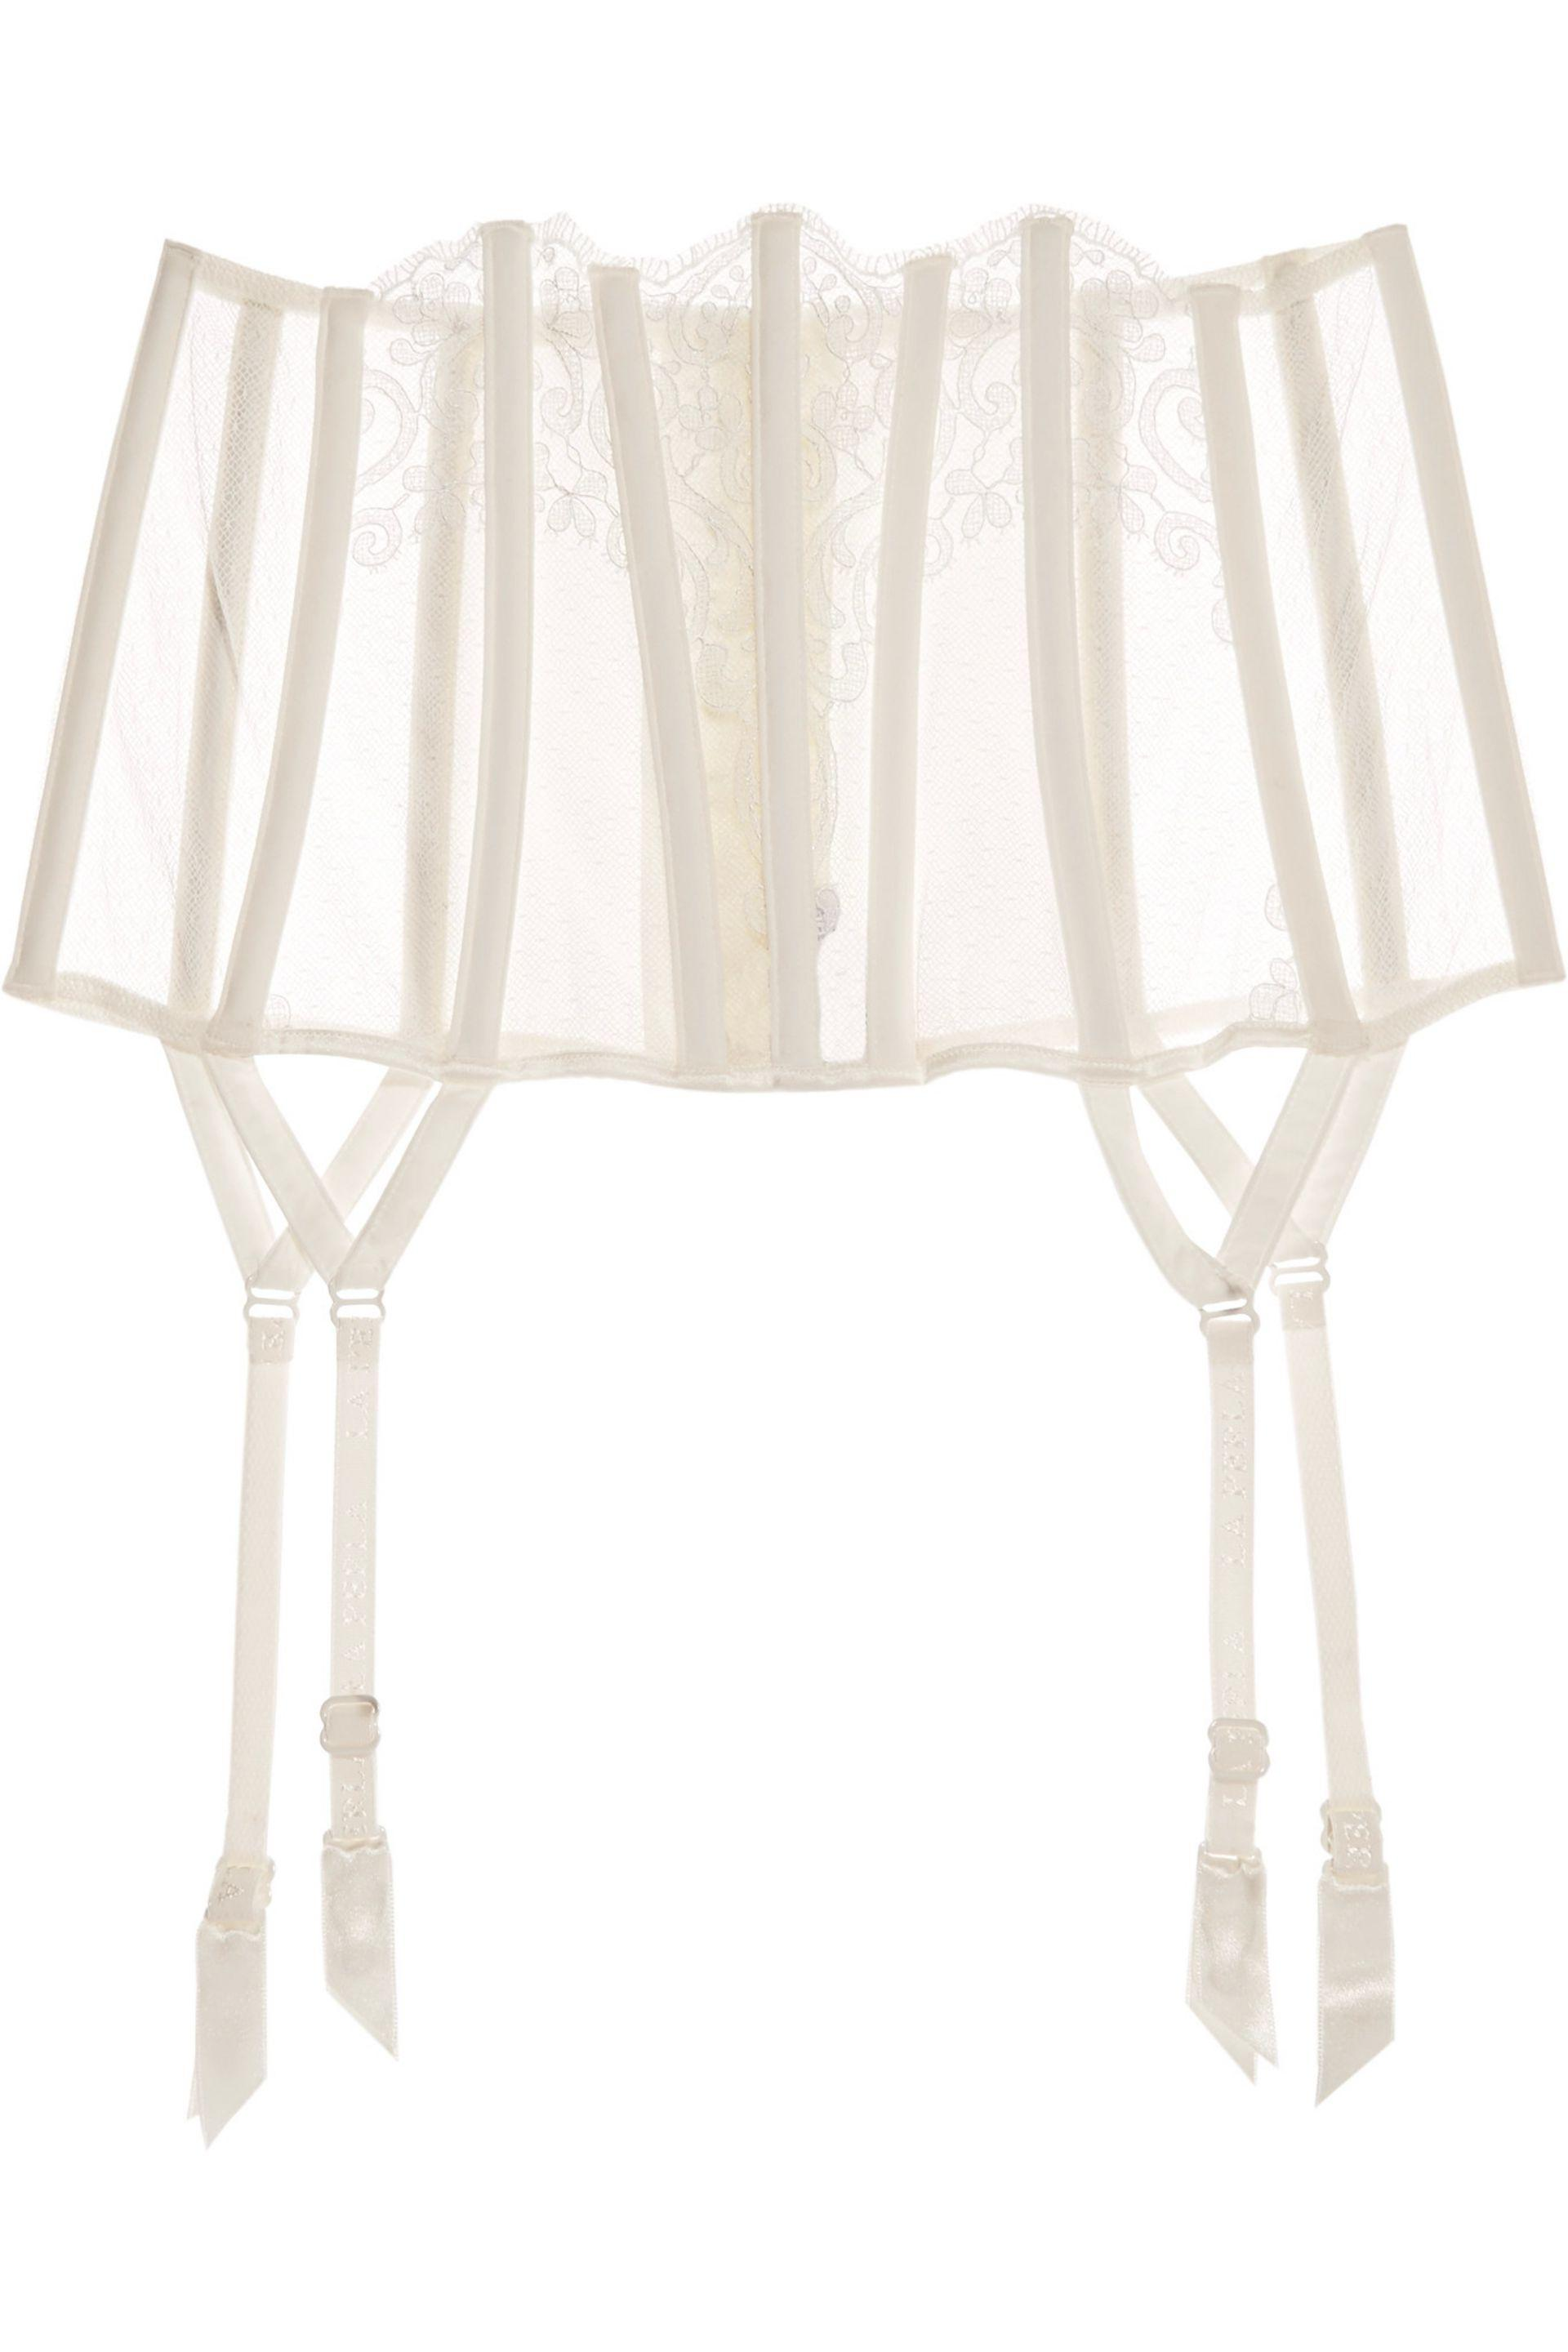 La Perla Woman Light And Shadow Lace And Point Desprit Suspender Belt Ivory Size II La Perla